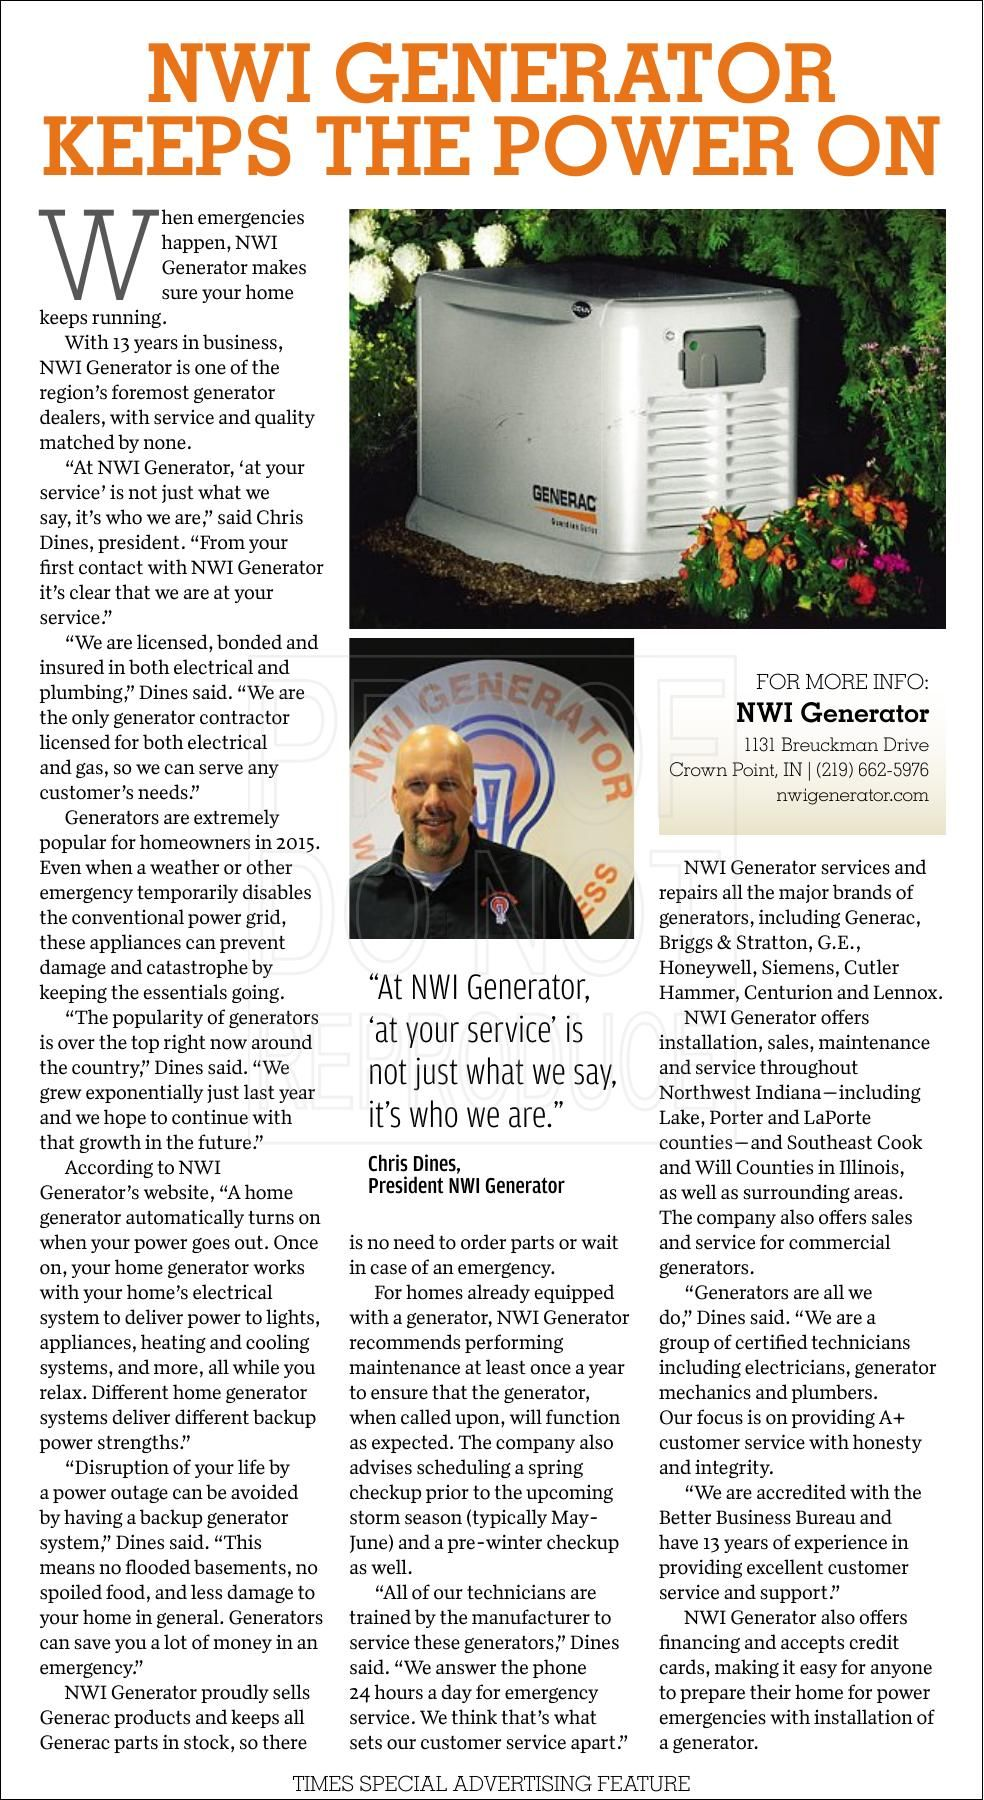 NWI Generator Keeps the Power On